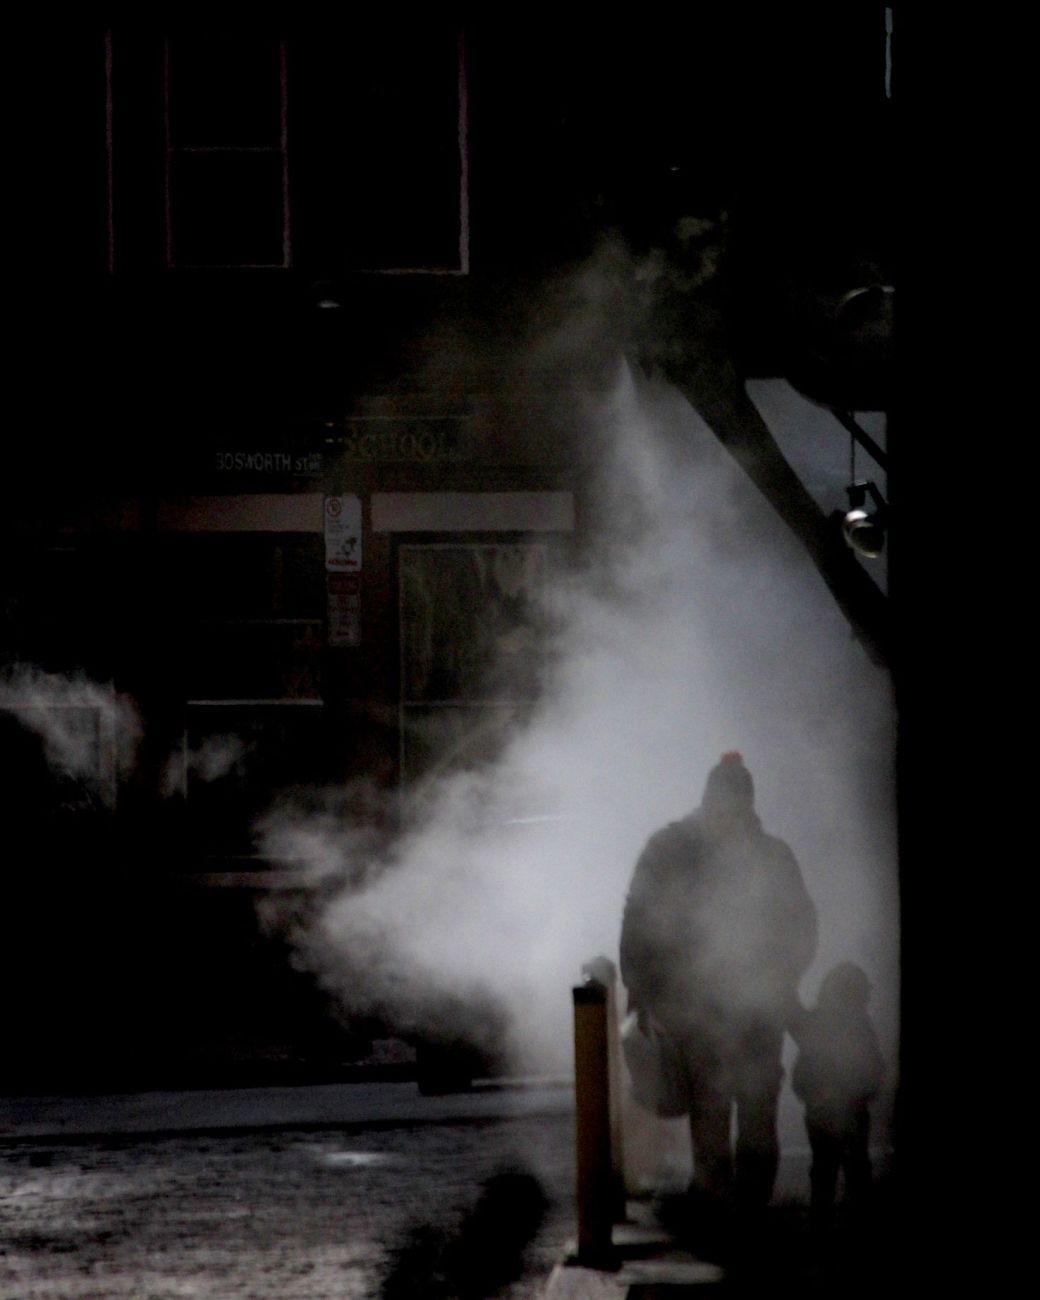 boston downtown man walking with child in steam